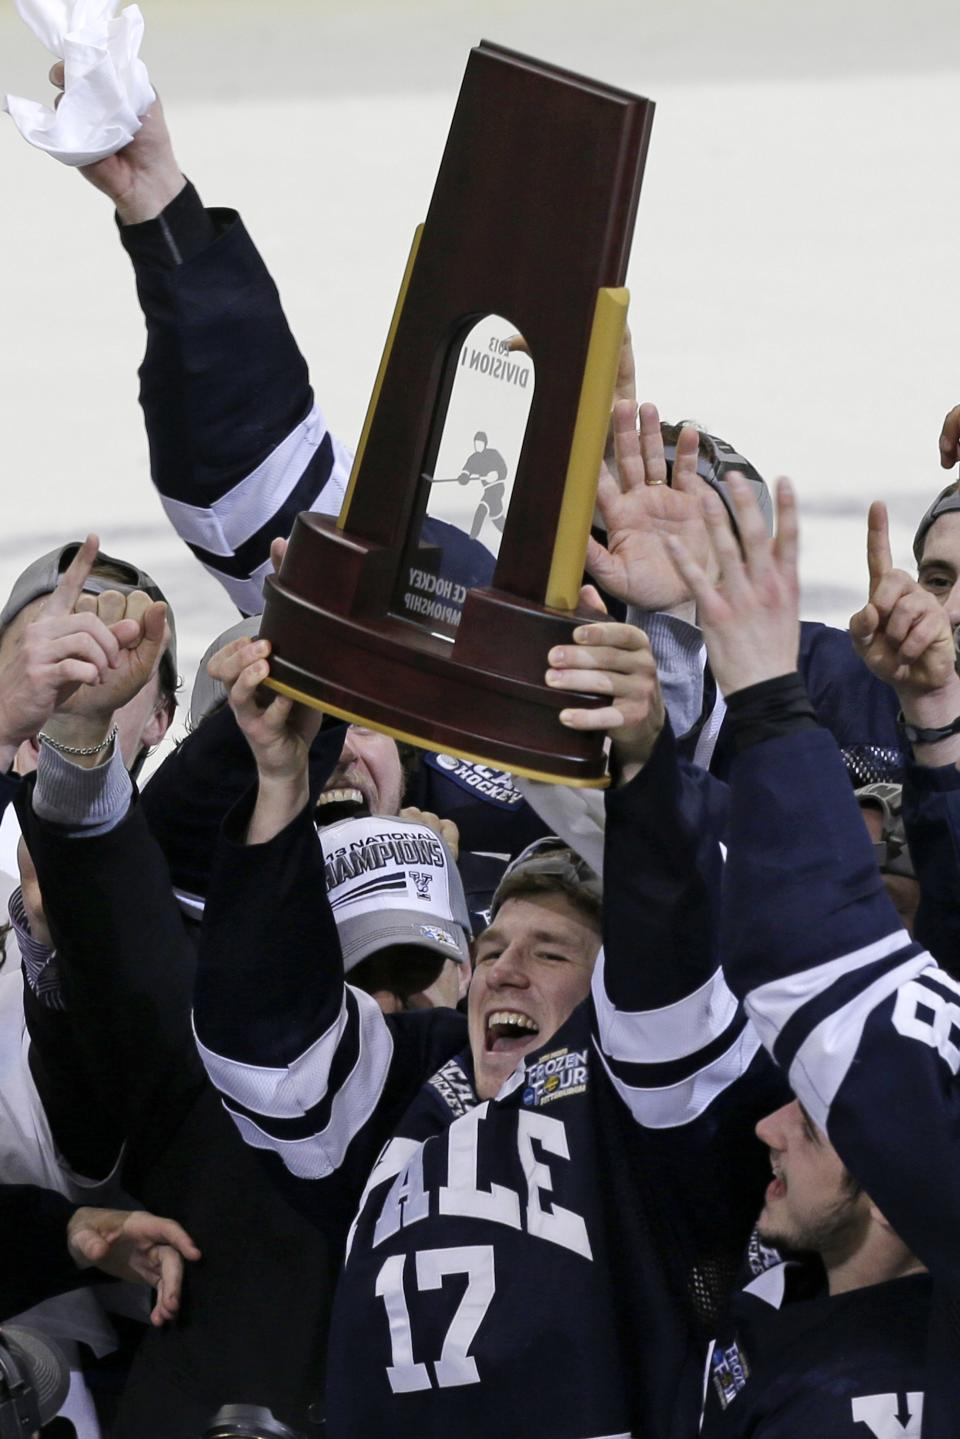 Yale captain Andrew Miller (17) hoists the trophy after Yale won  the NCAA men's college hockey national championship game over Quinnipiac 4-0, in Pittsburgh Saturday, April 13, 2013.  (AP Photo/Gene Puskar)